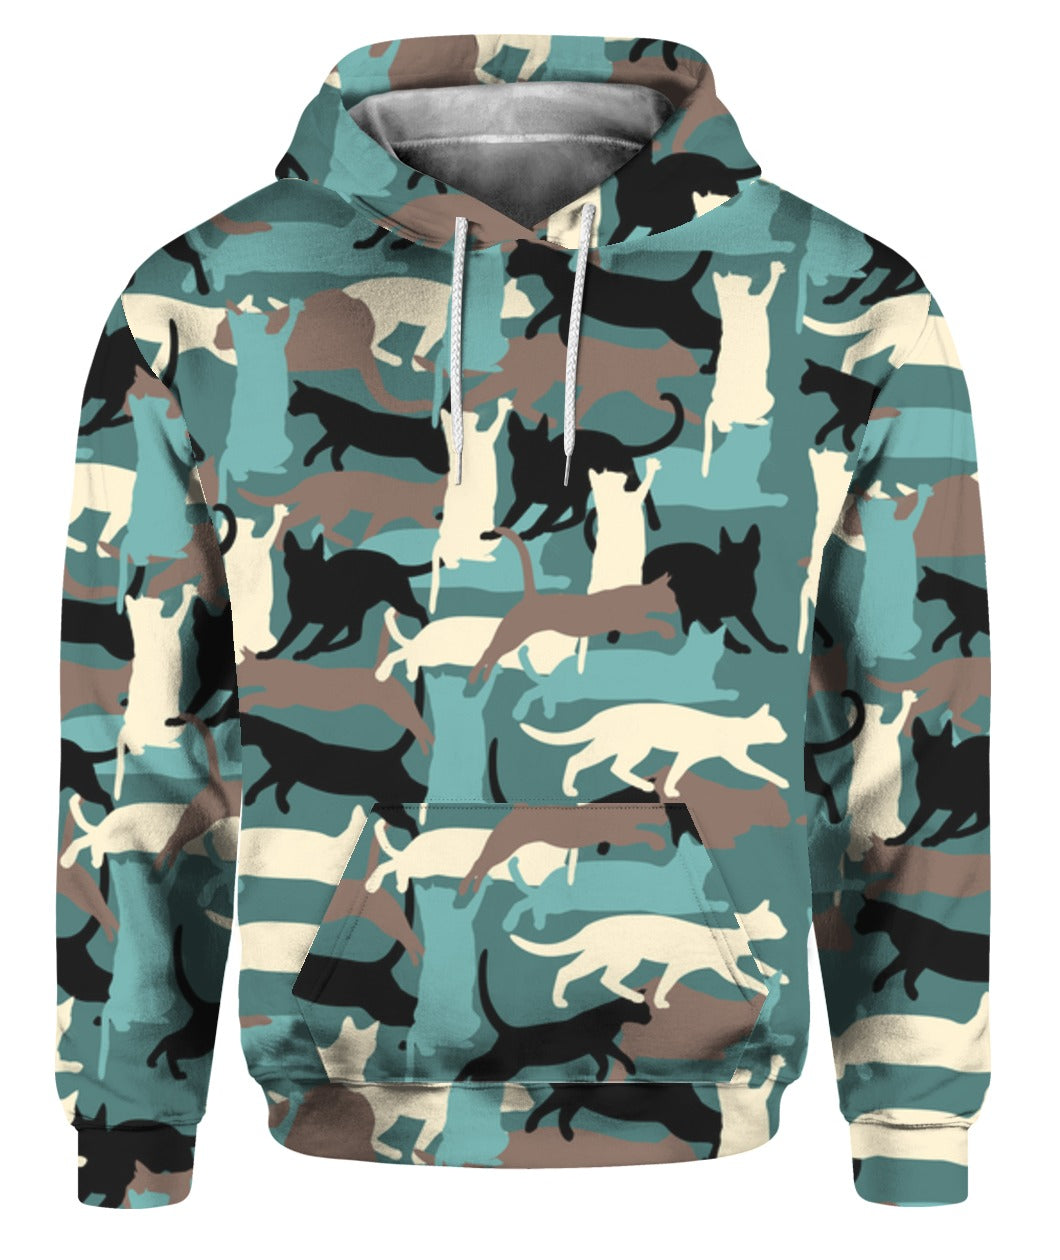 Camouflage Cat Patterns 3D Hoodie Full Printed